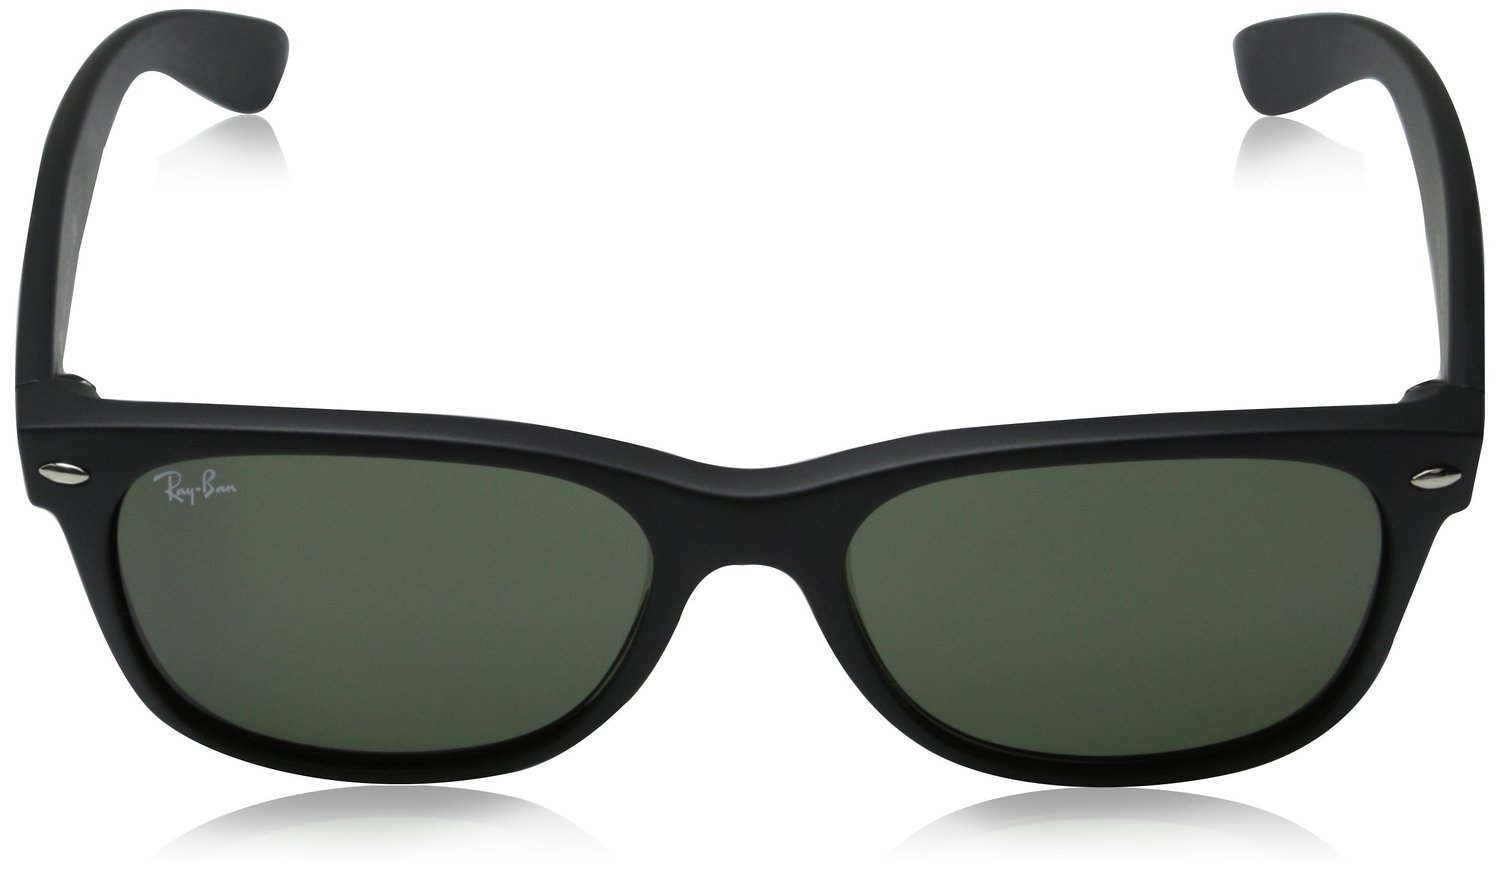 3a53b9727f ... Ray-Ban Wayfarer Non-Polarized Sunglasses - Black Green Lens - 55mm ...